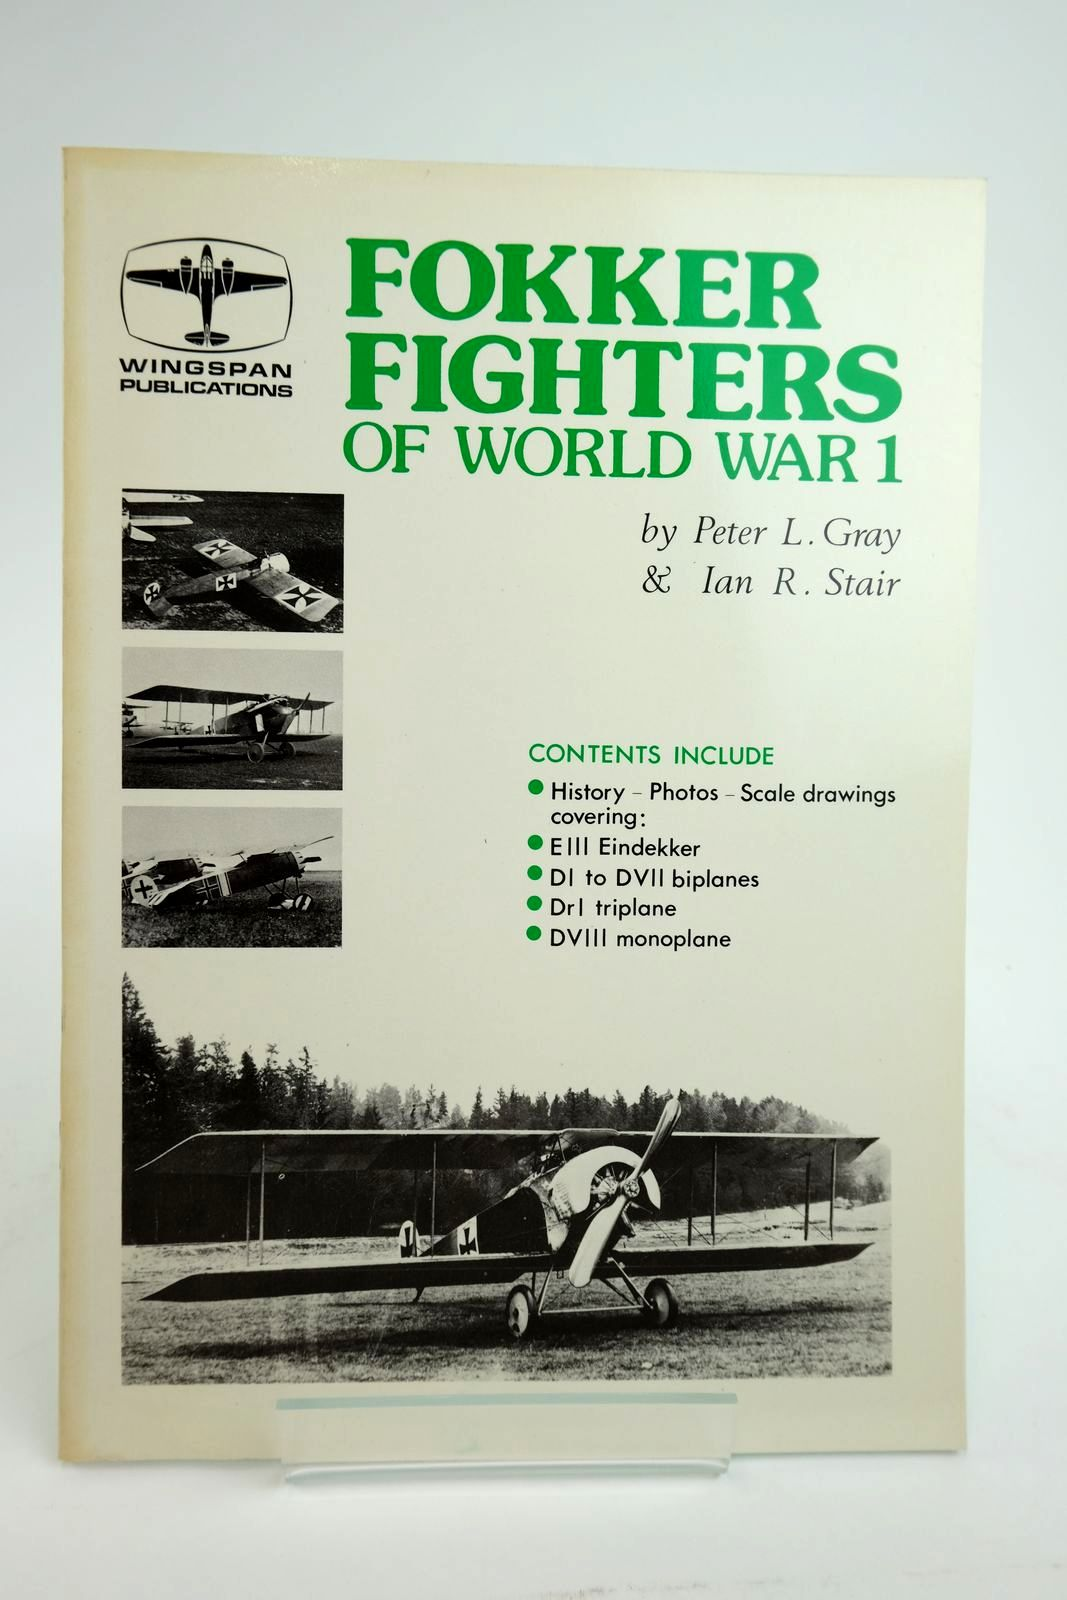 Photo of FOKKER FIGHTERS OF WORLD WAR 1 written by Gray, Peter L. Stair, Ian R. published by Vintage Aviation Publications Ltd. (STOCK CODE: 2135034)  for sale by Stella & Rose's Books